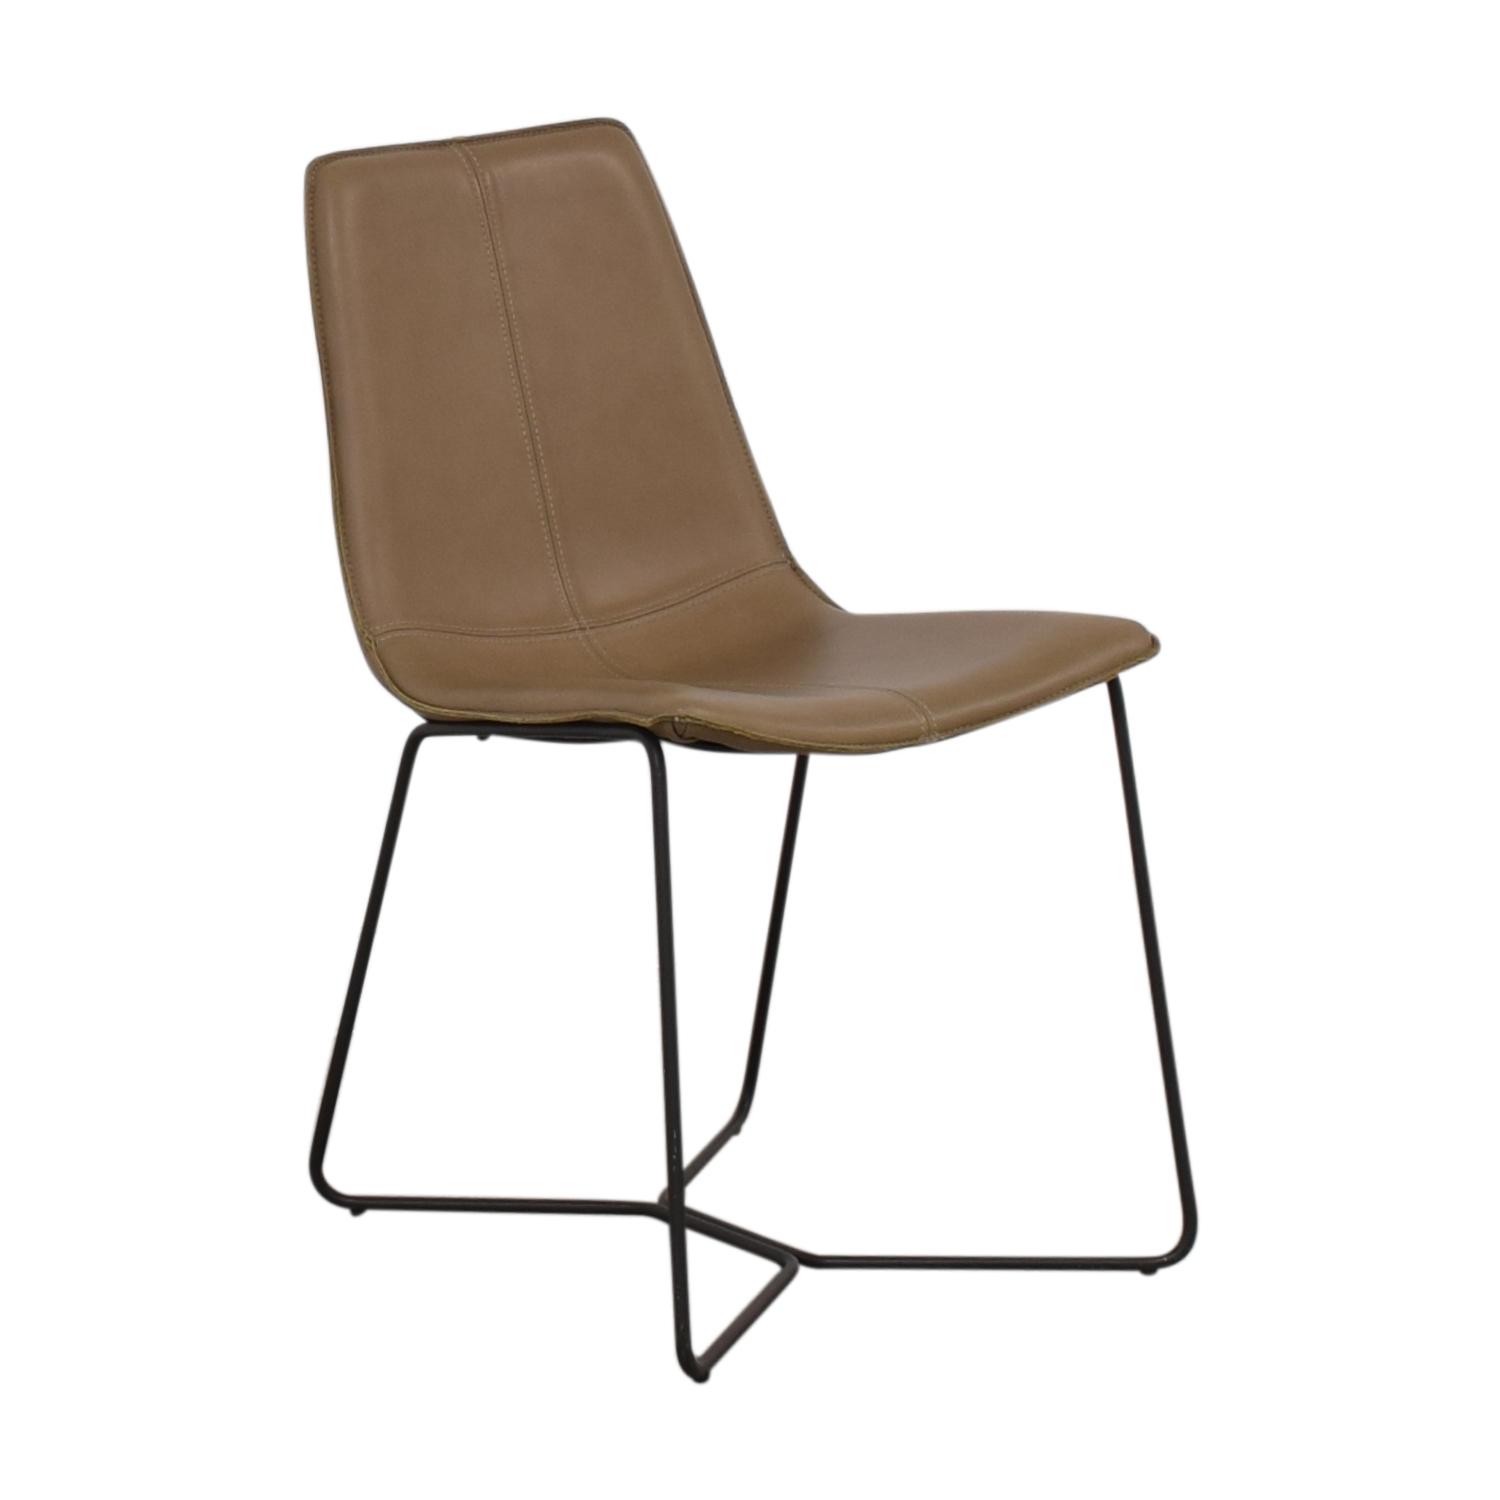 West Elm Leather Slope Dining Chair sale